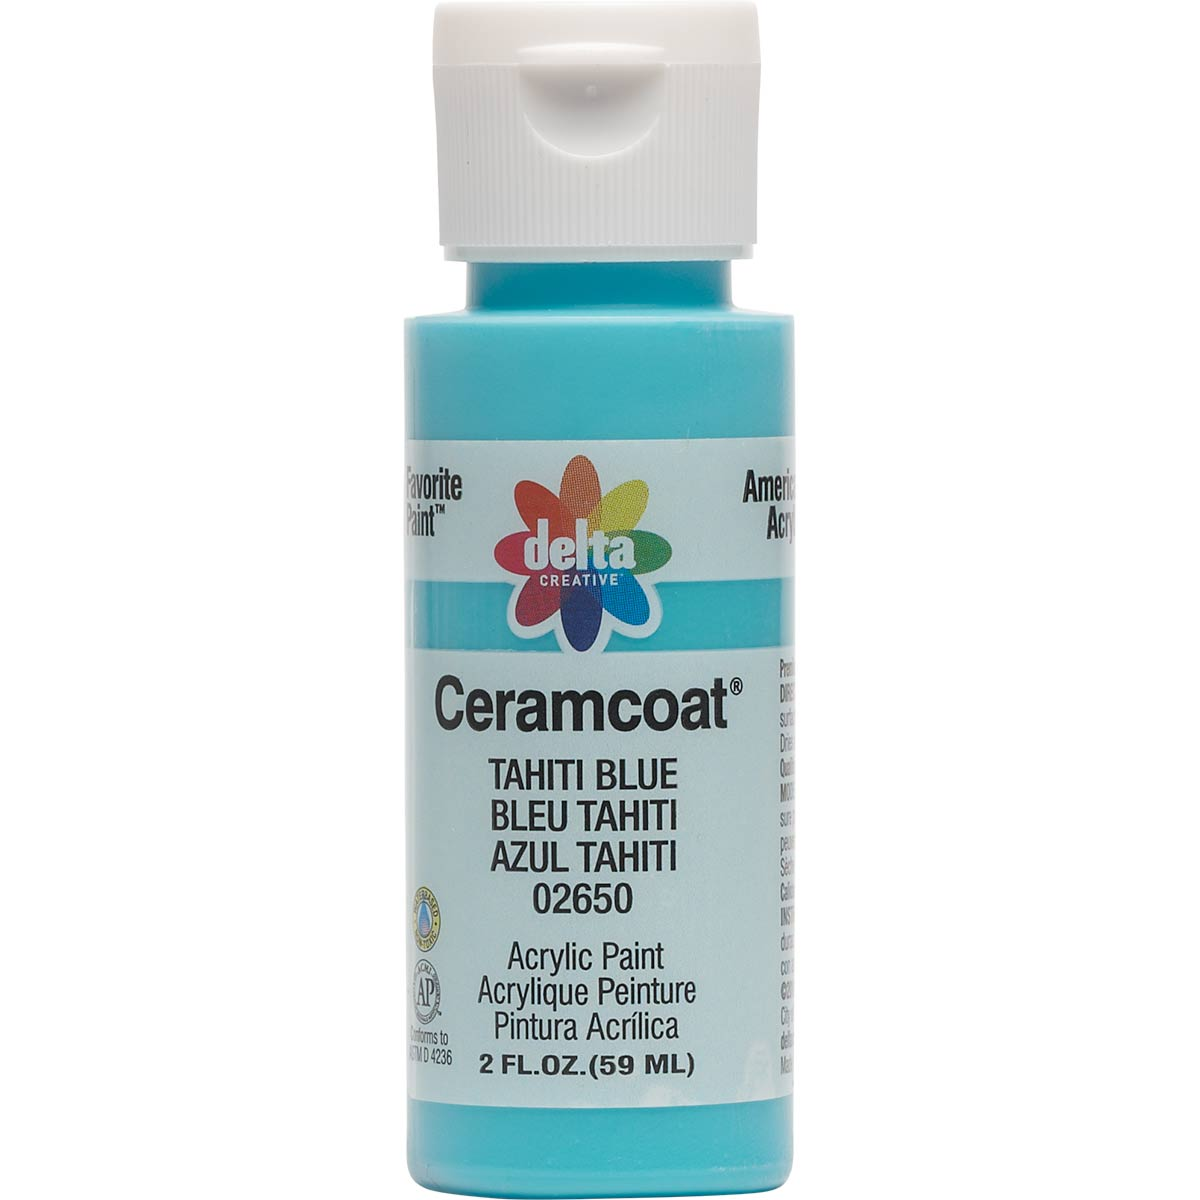 Delta Ceramcoat ® Acrylic Paint - Tahiti Blue, 2 oz. - 026500202W